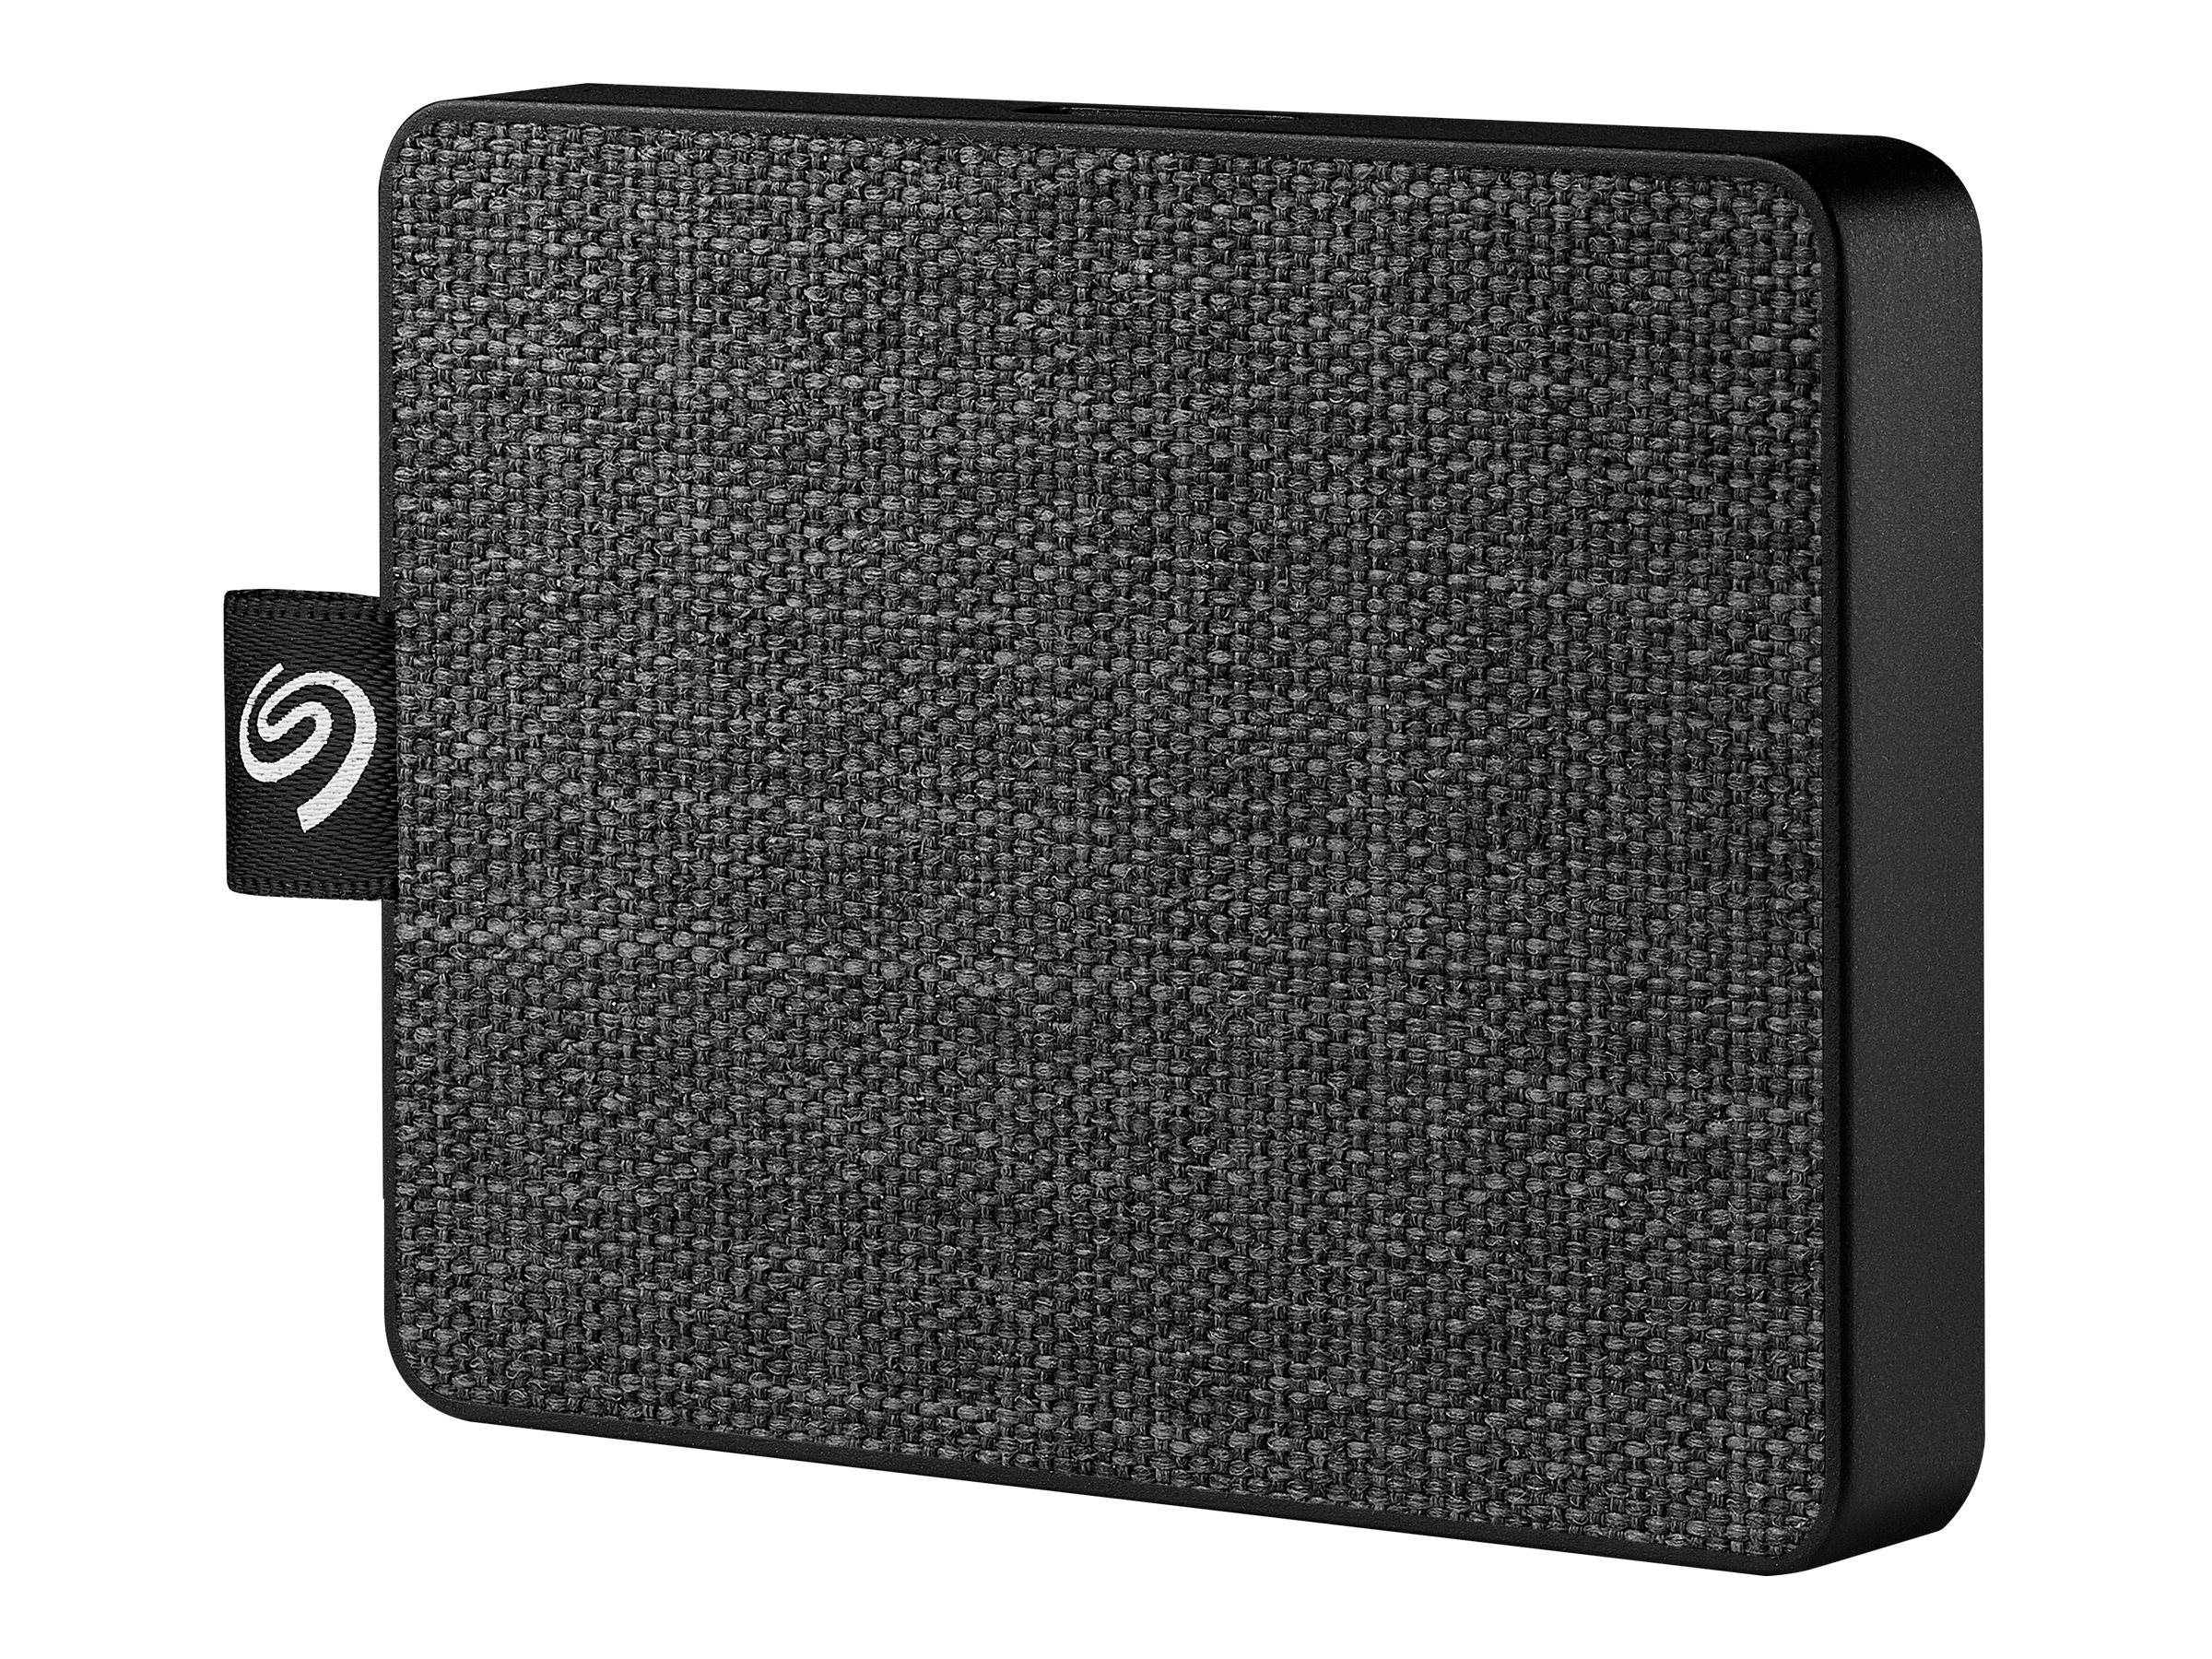 Seagate One Touch SSD STJE500400 - solid state drive - 500 GB - USB 3.0